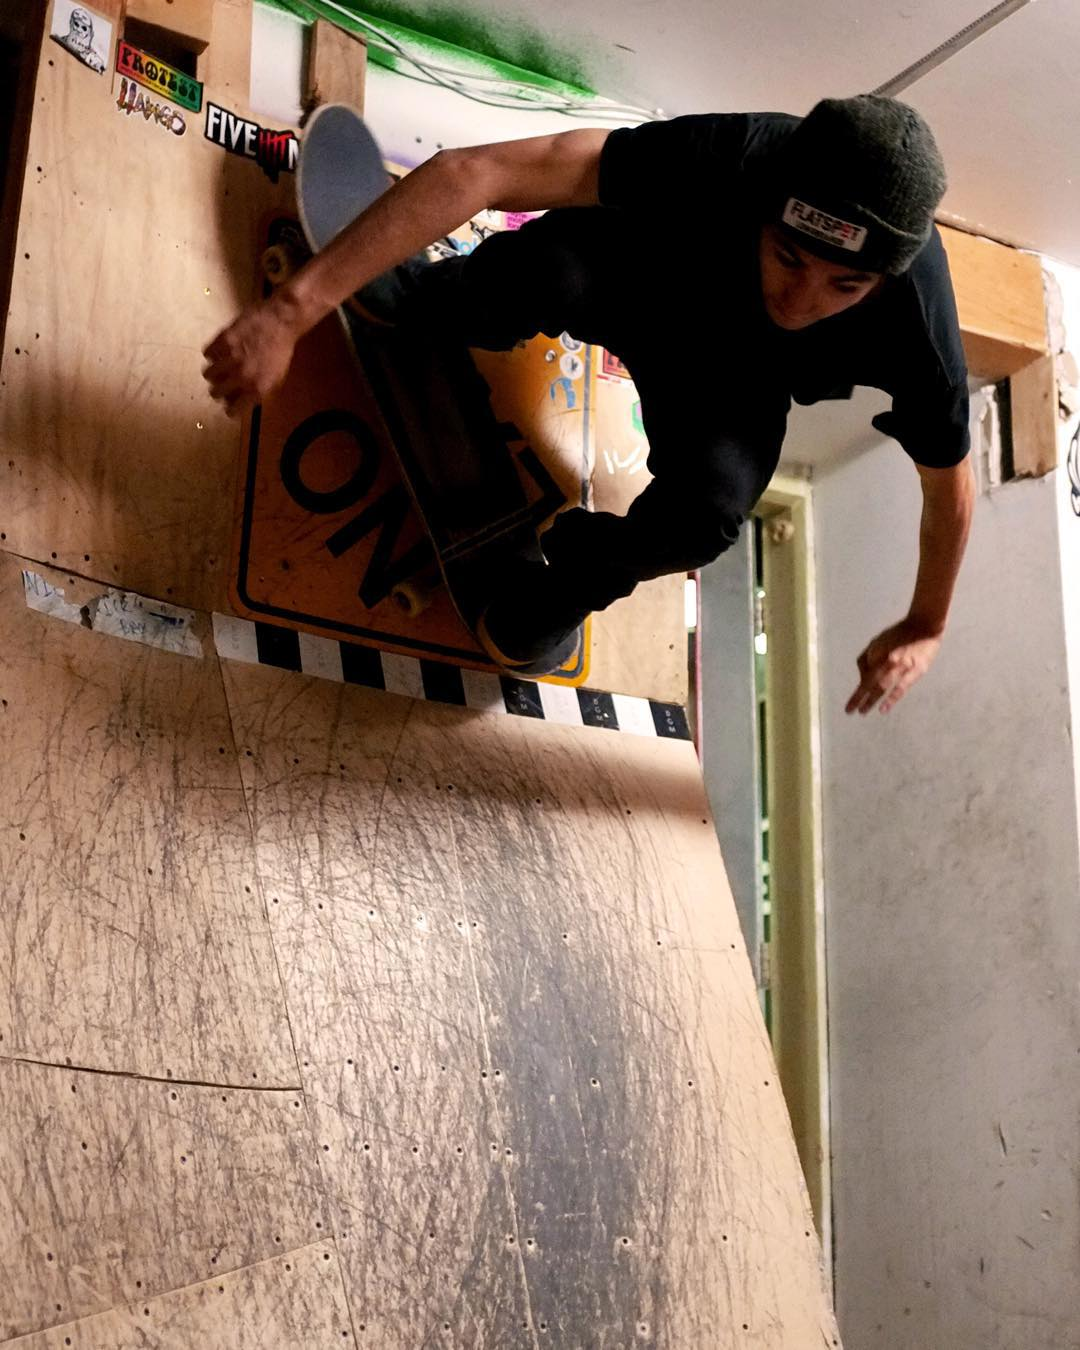 Team rider @sho_ouellette gets high on the wallride at @flatspotshop.